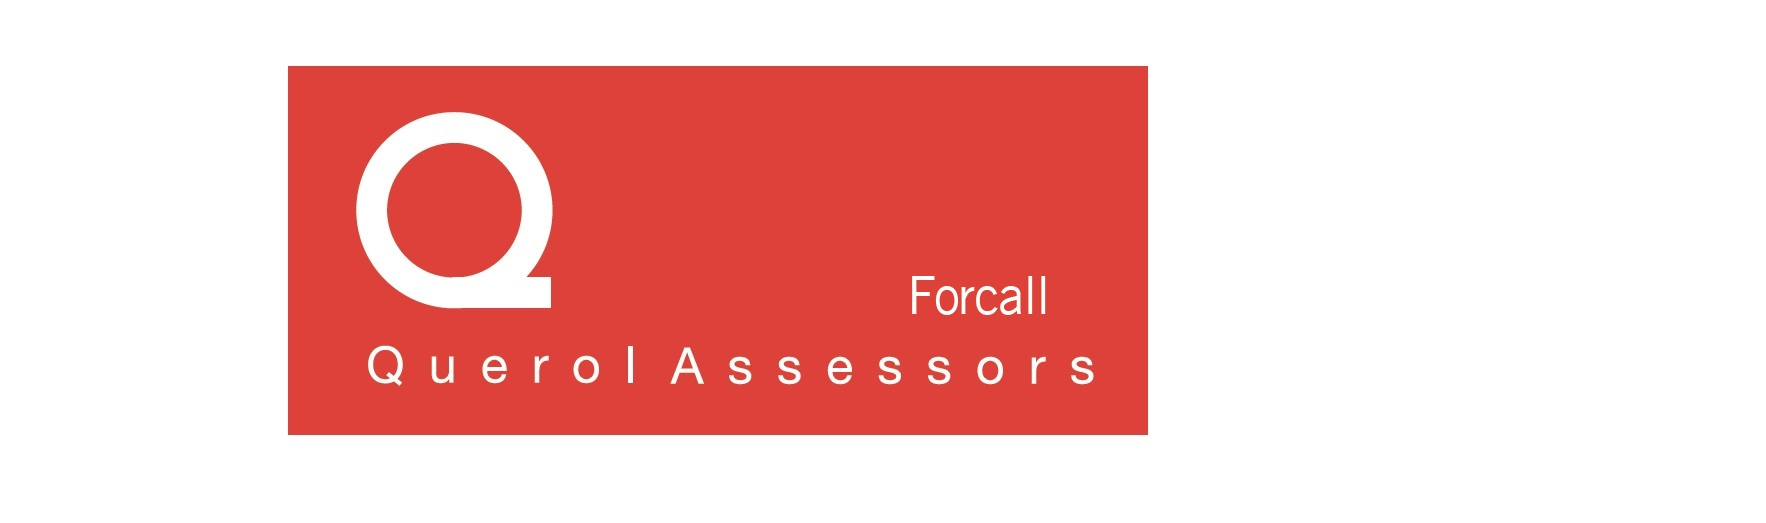 Querol Assessors Forcall